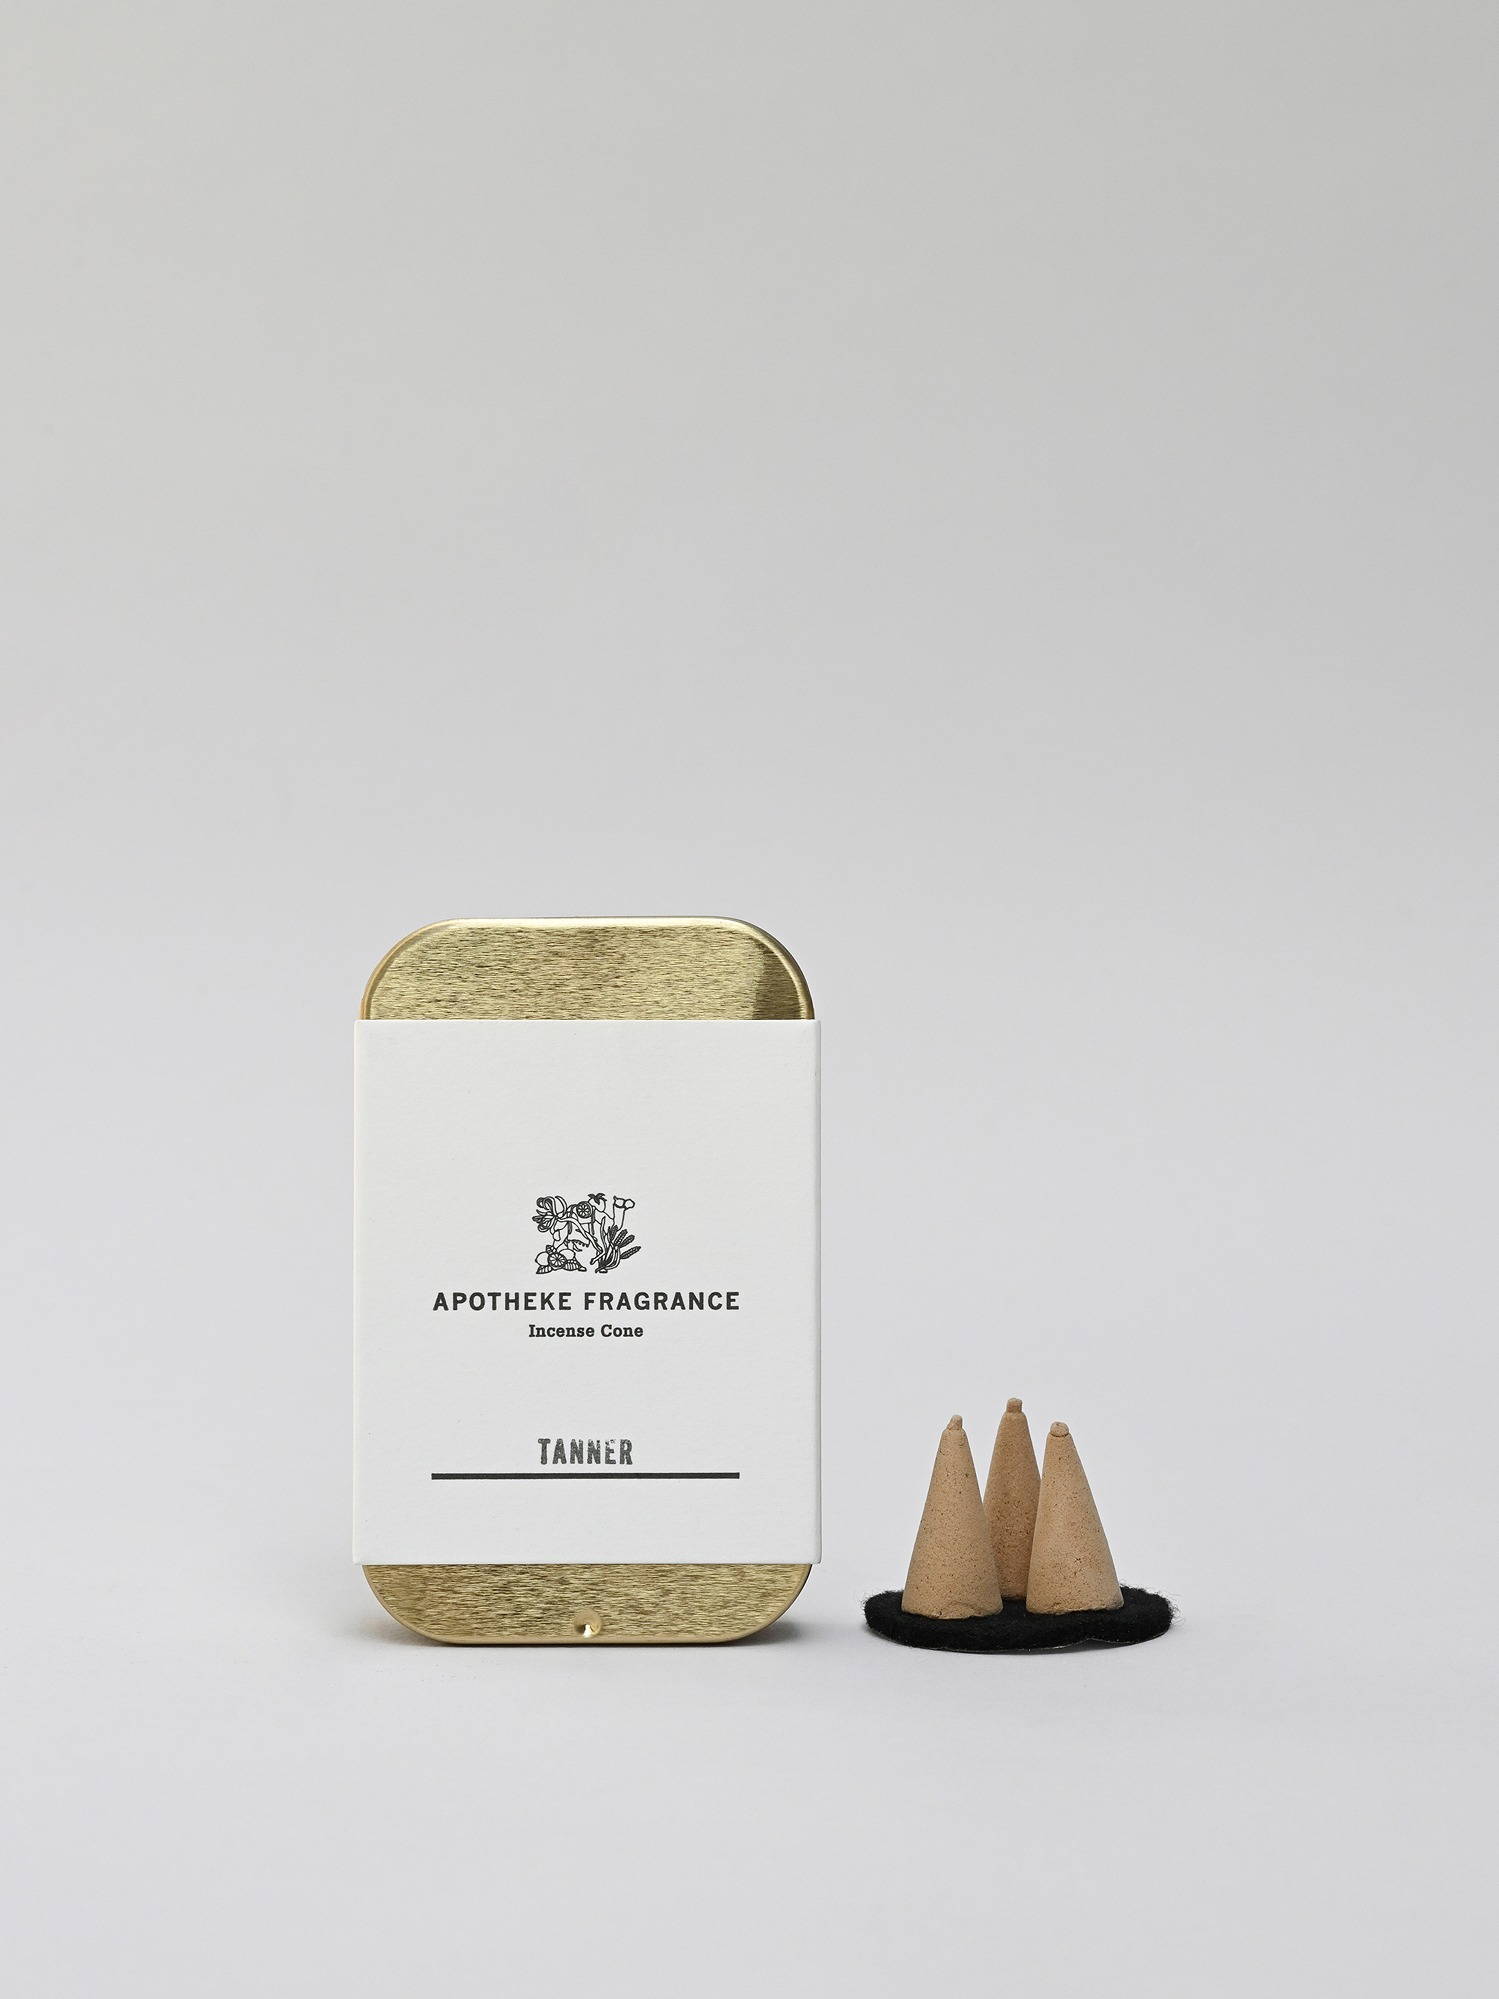 apotheke fragrance incense cone(tanner)